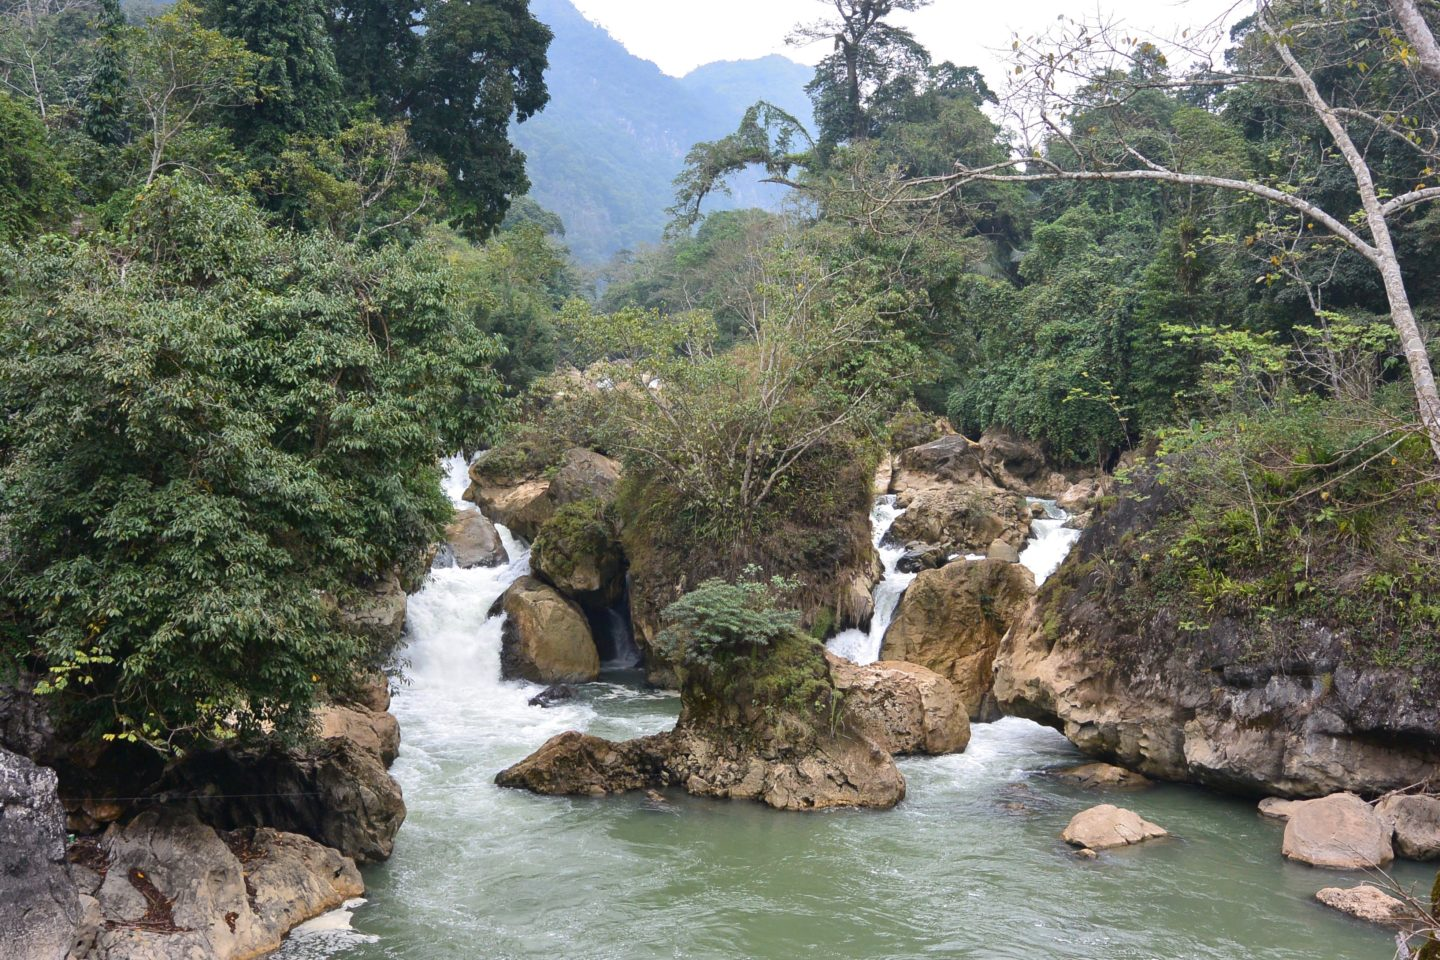 Dau Dang Waterfall from its viewpoint